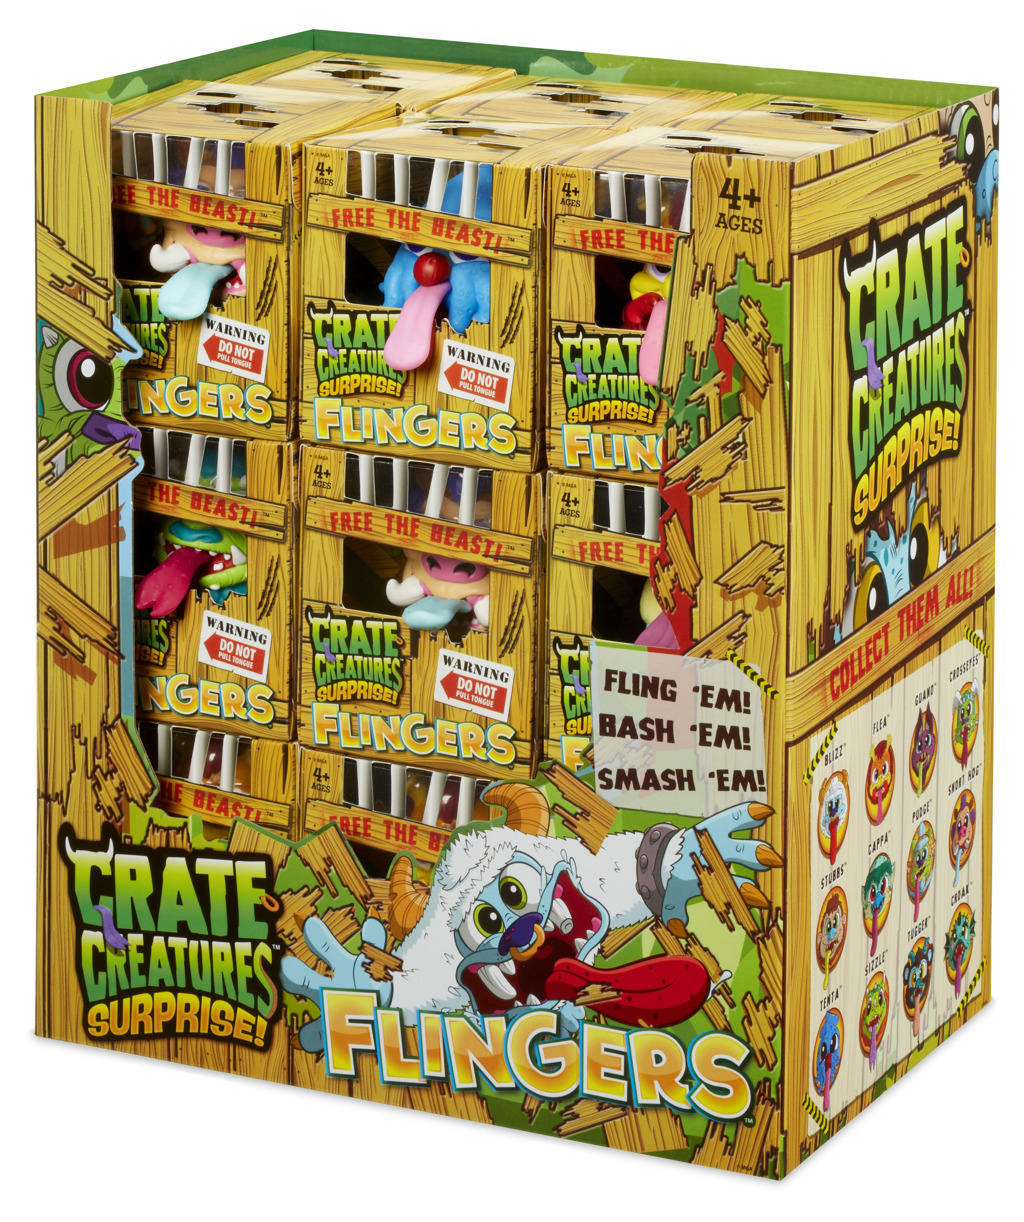 Crate Creatures Surprise Flingers PDQ Wave 1